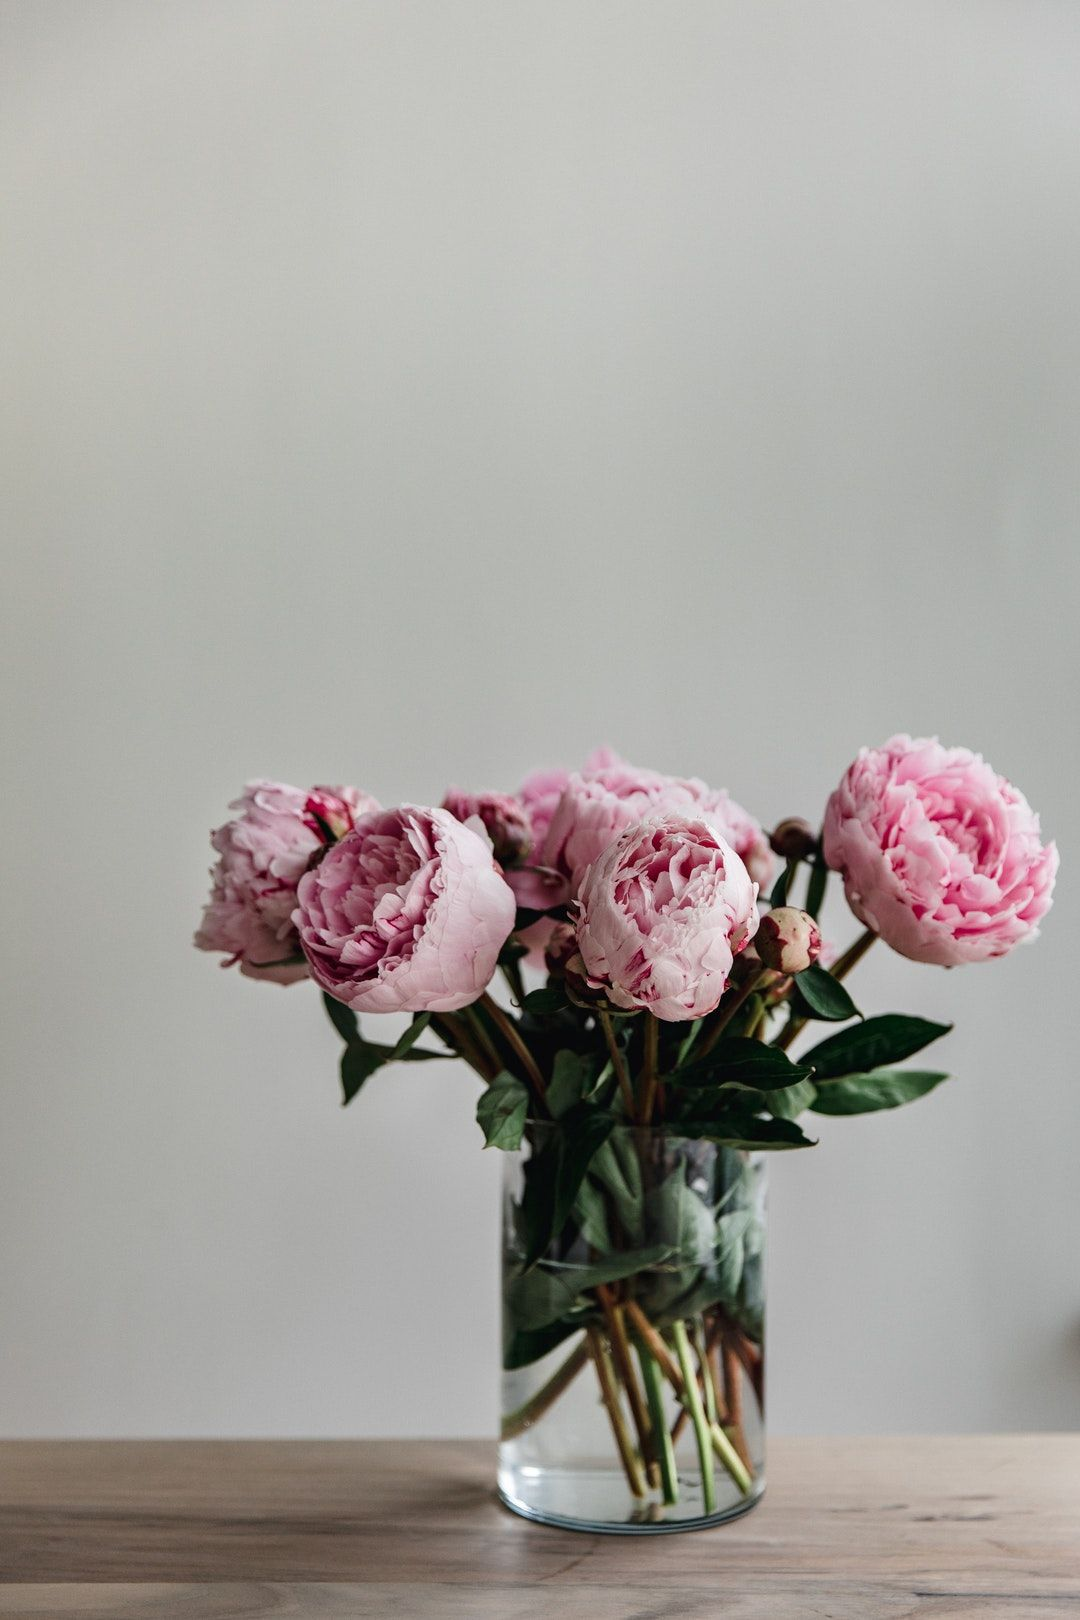 This Simple Image Of A Bunch Of Peoni Hd Photo By Patrick Langwallner Patresinger On Unsplash Flower Aesthetic Flower Vases Pink Flowers